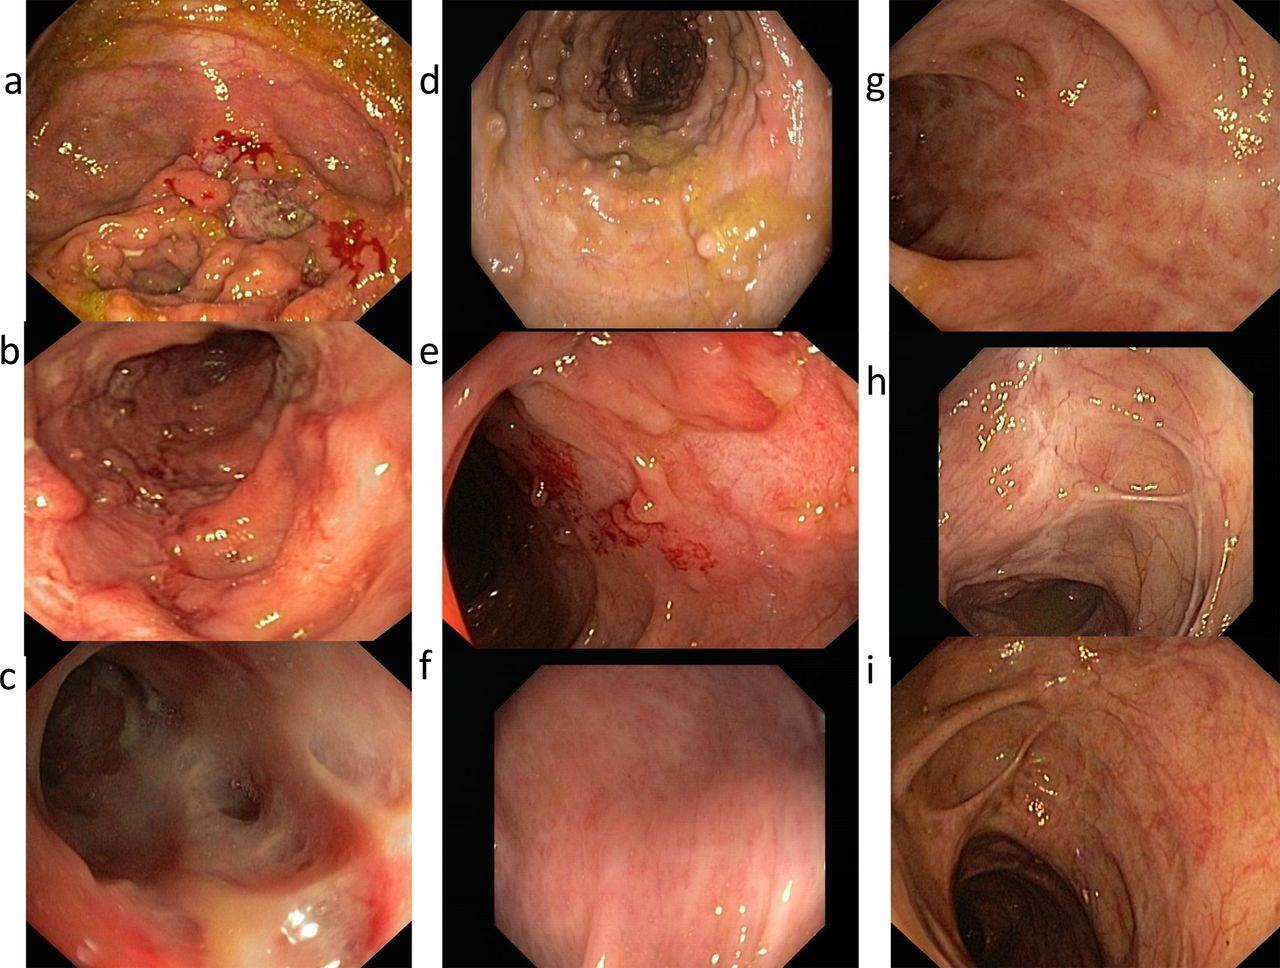 Role Of Endoscopy Cross Sectional Imaging And Biomarkers